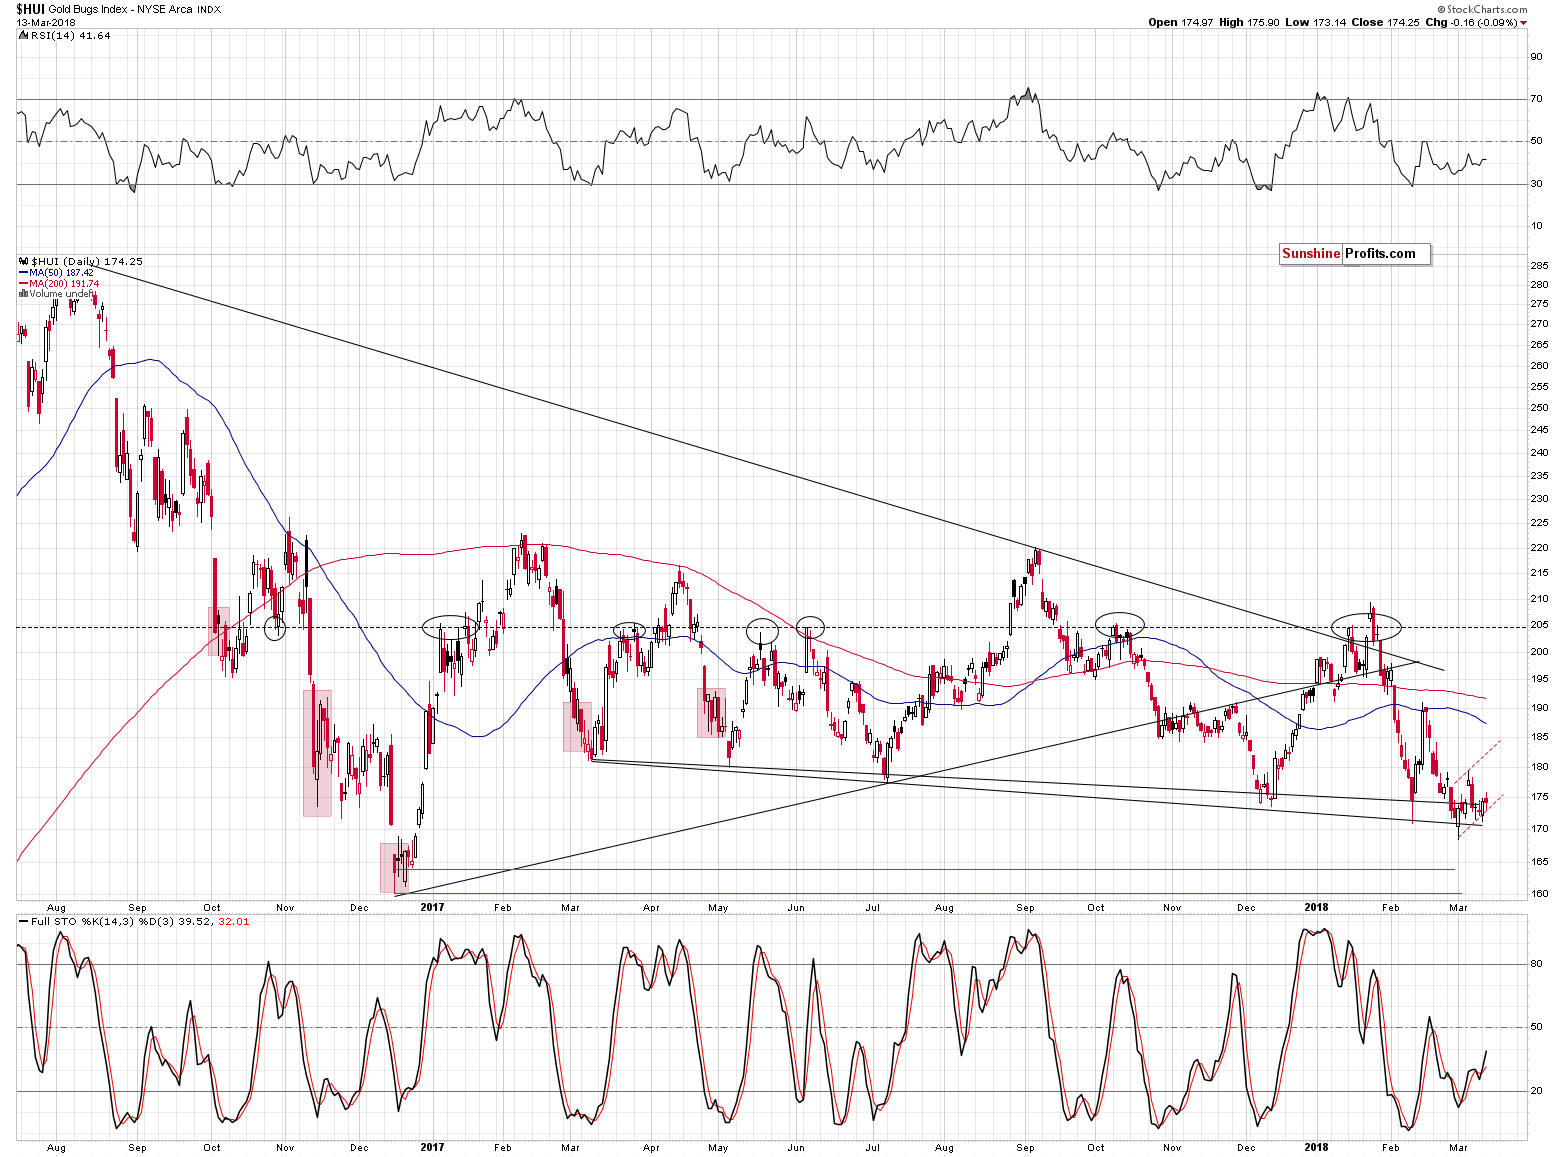 HUI Index chart - Gold Bugs, Mining stocks